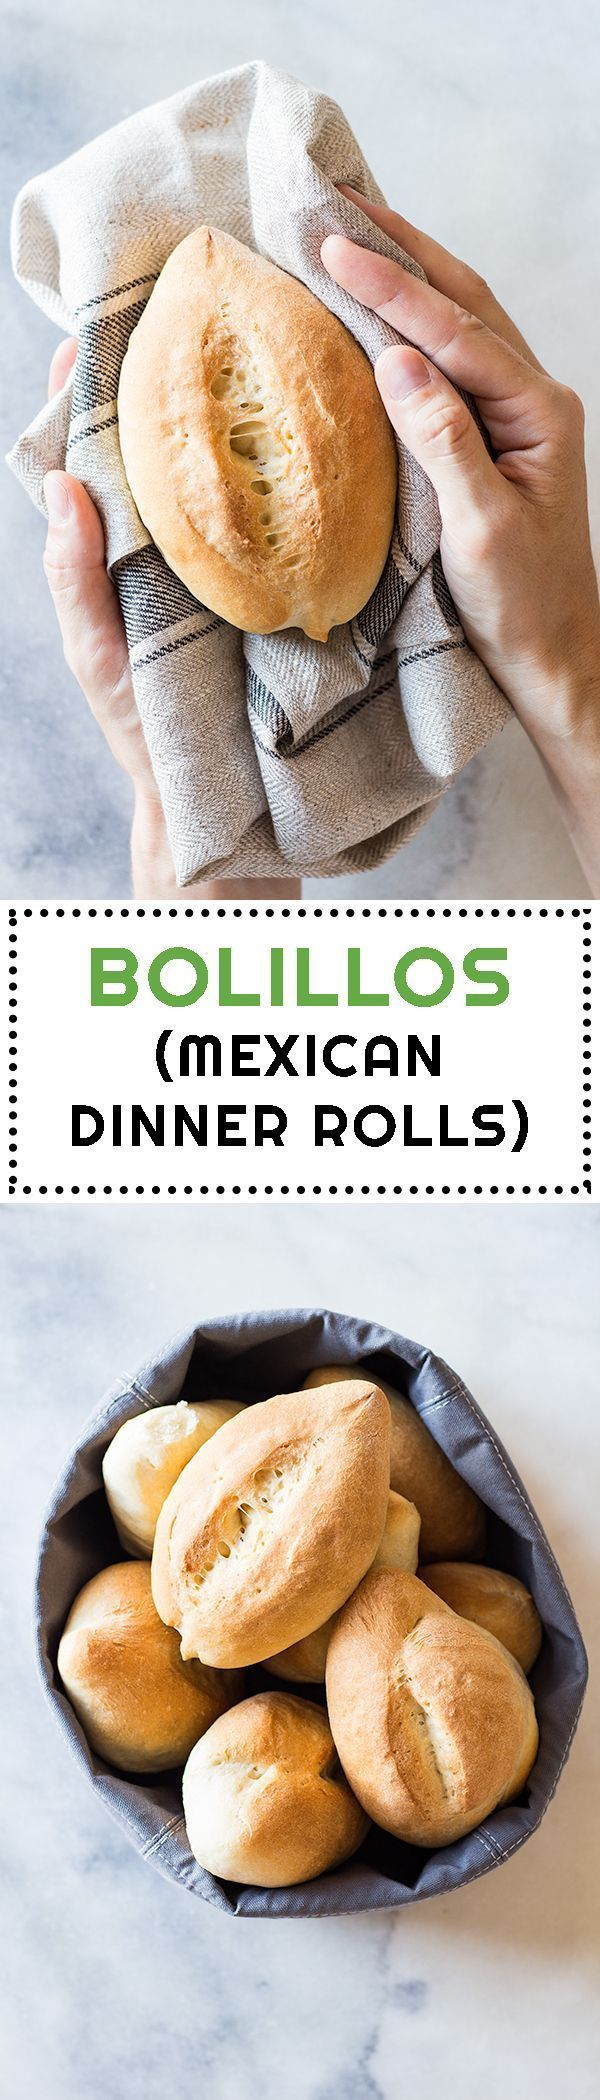 Mexican Dinner Rolls or Bolillos are the number 1 sold bread in Mexico City. They are probably every Mexican's second favorite carbohydrate after tortillas. #mexicanfoodrecipes